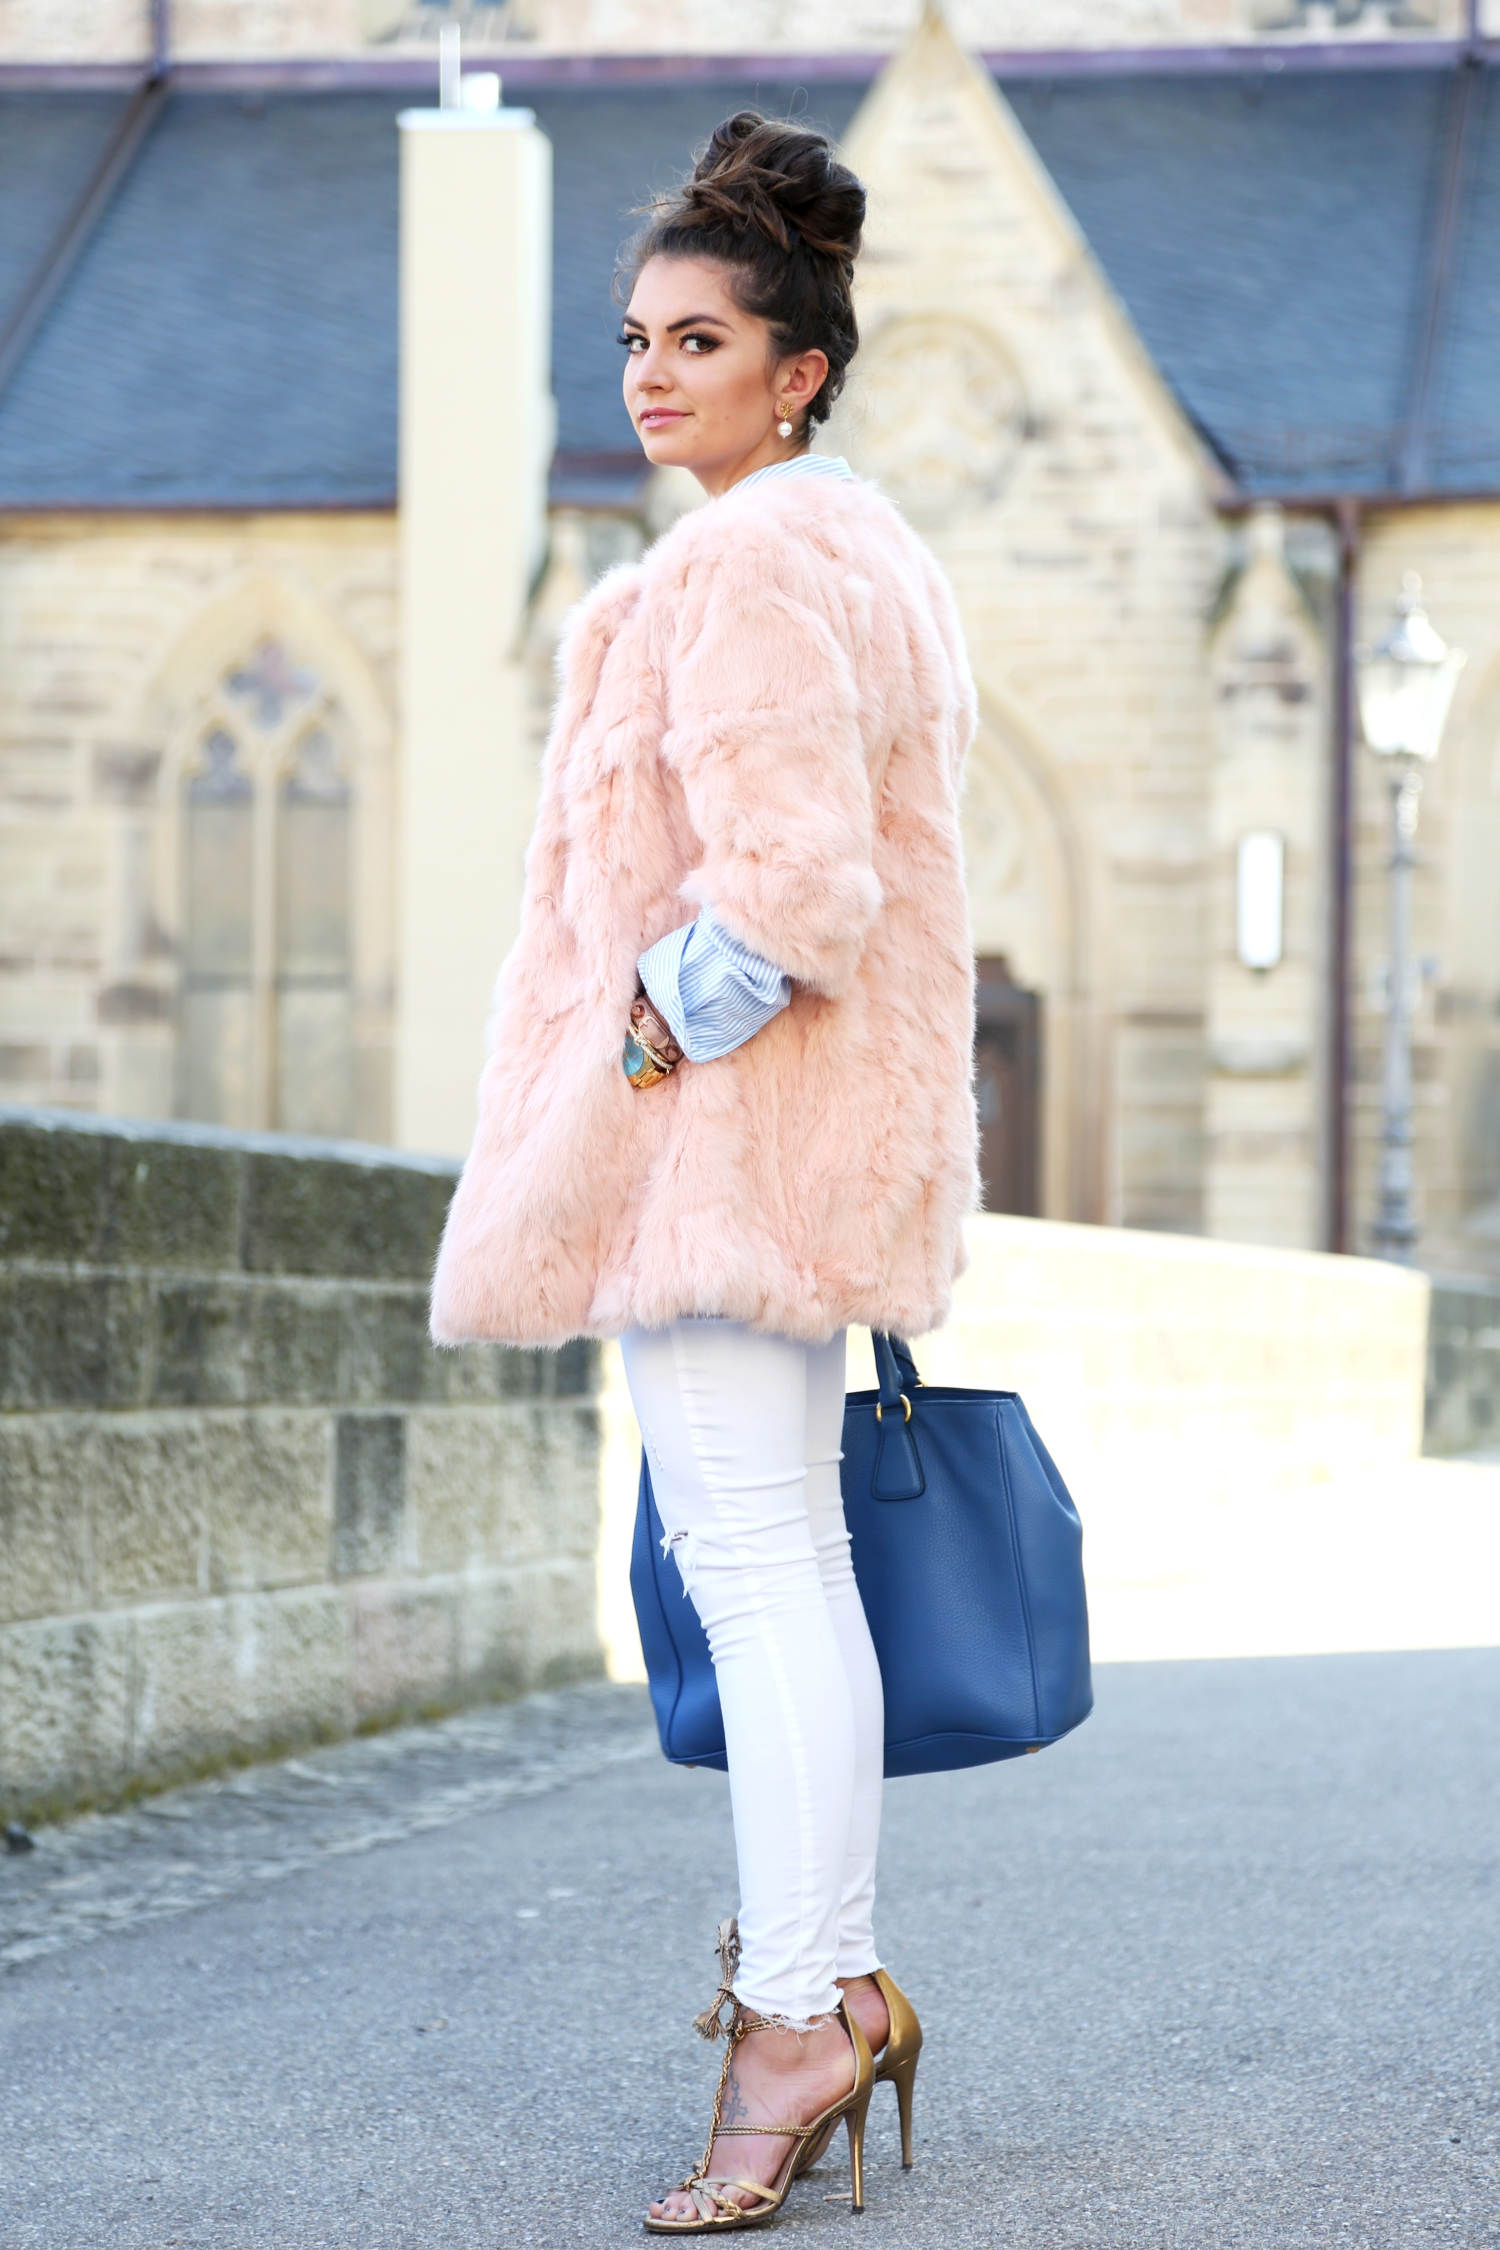 outfit-pastels-colors-spring-look-german-fashionblogger-prada-bag